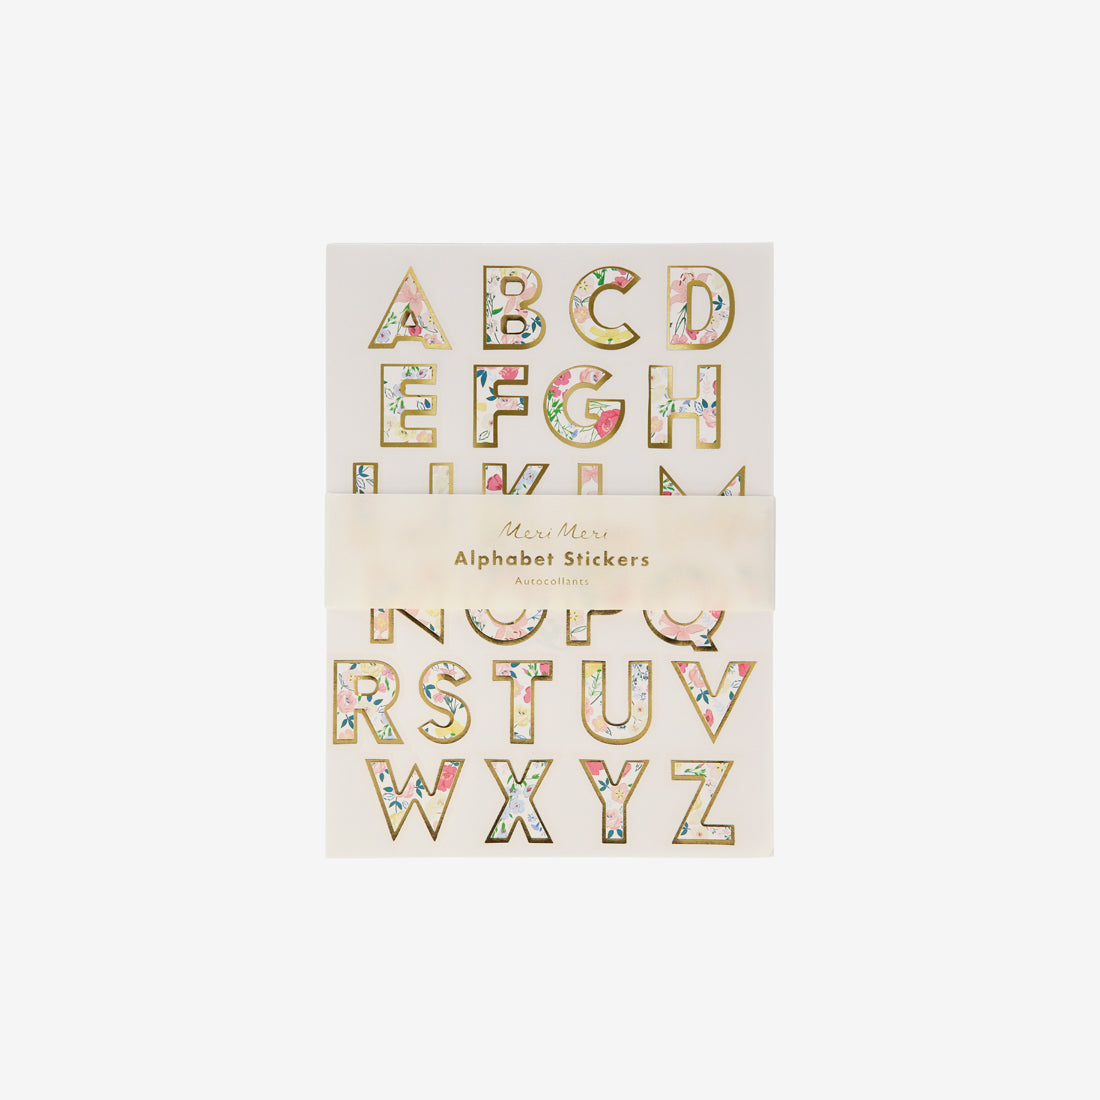 Alphabet Sticker Sheet - English Garden